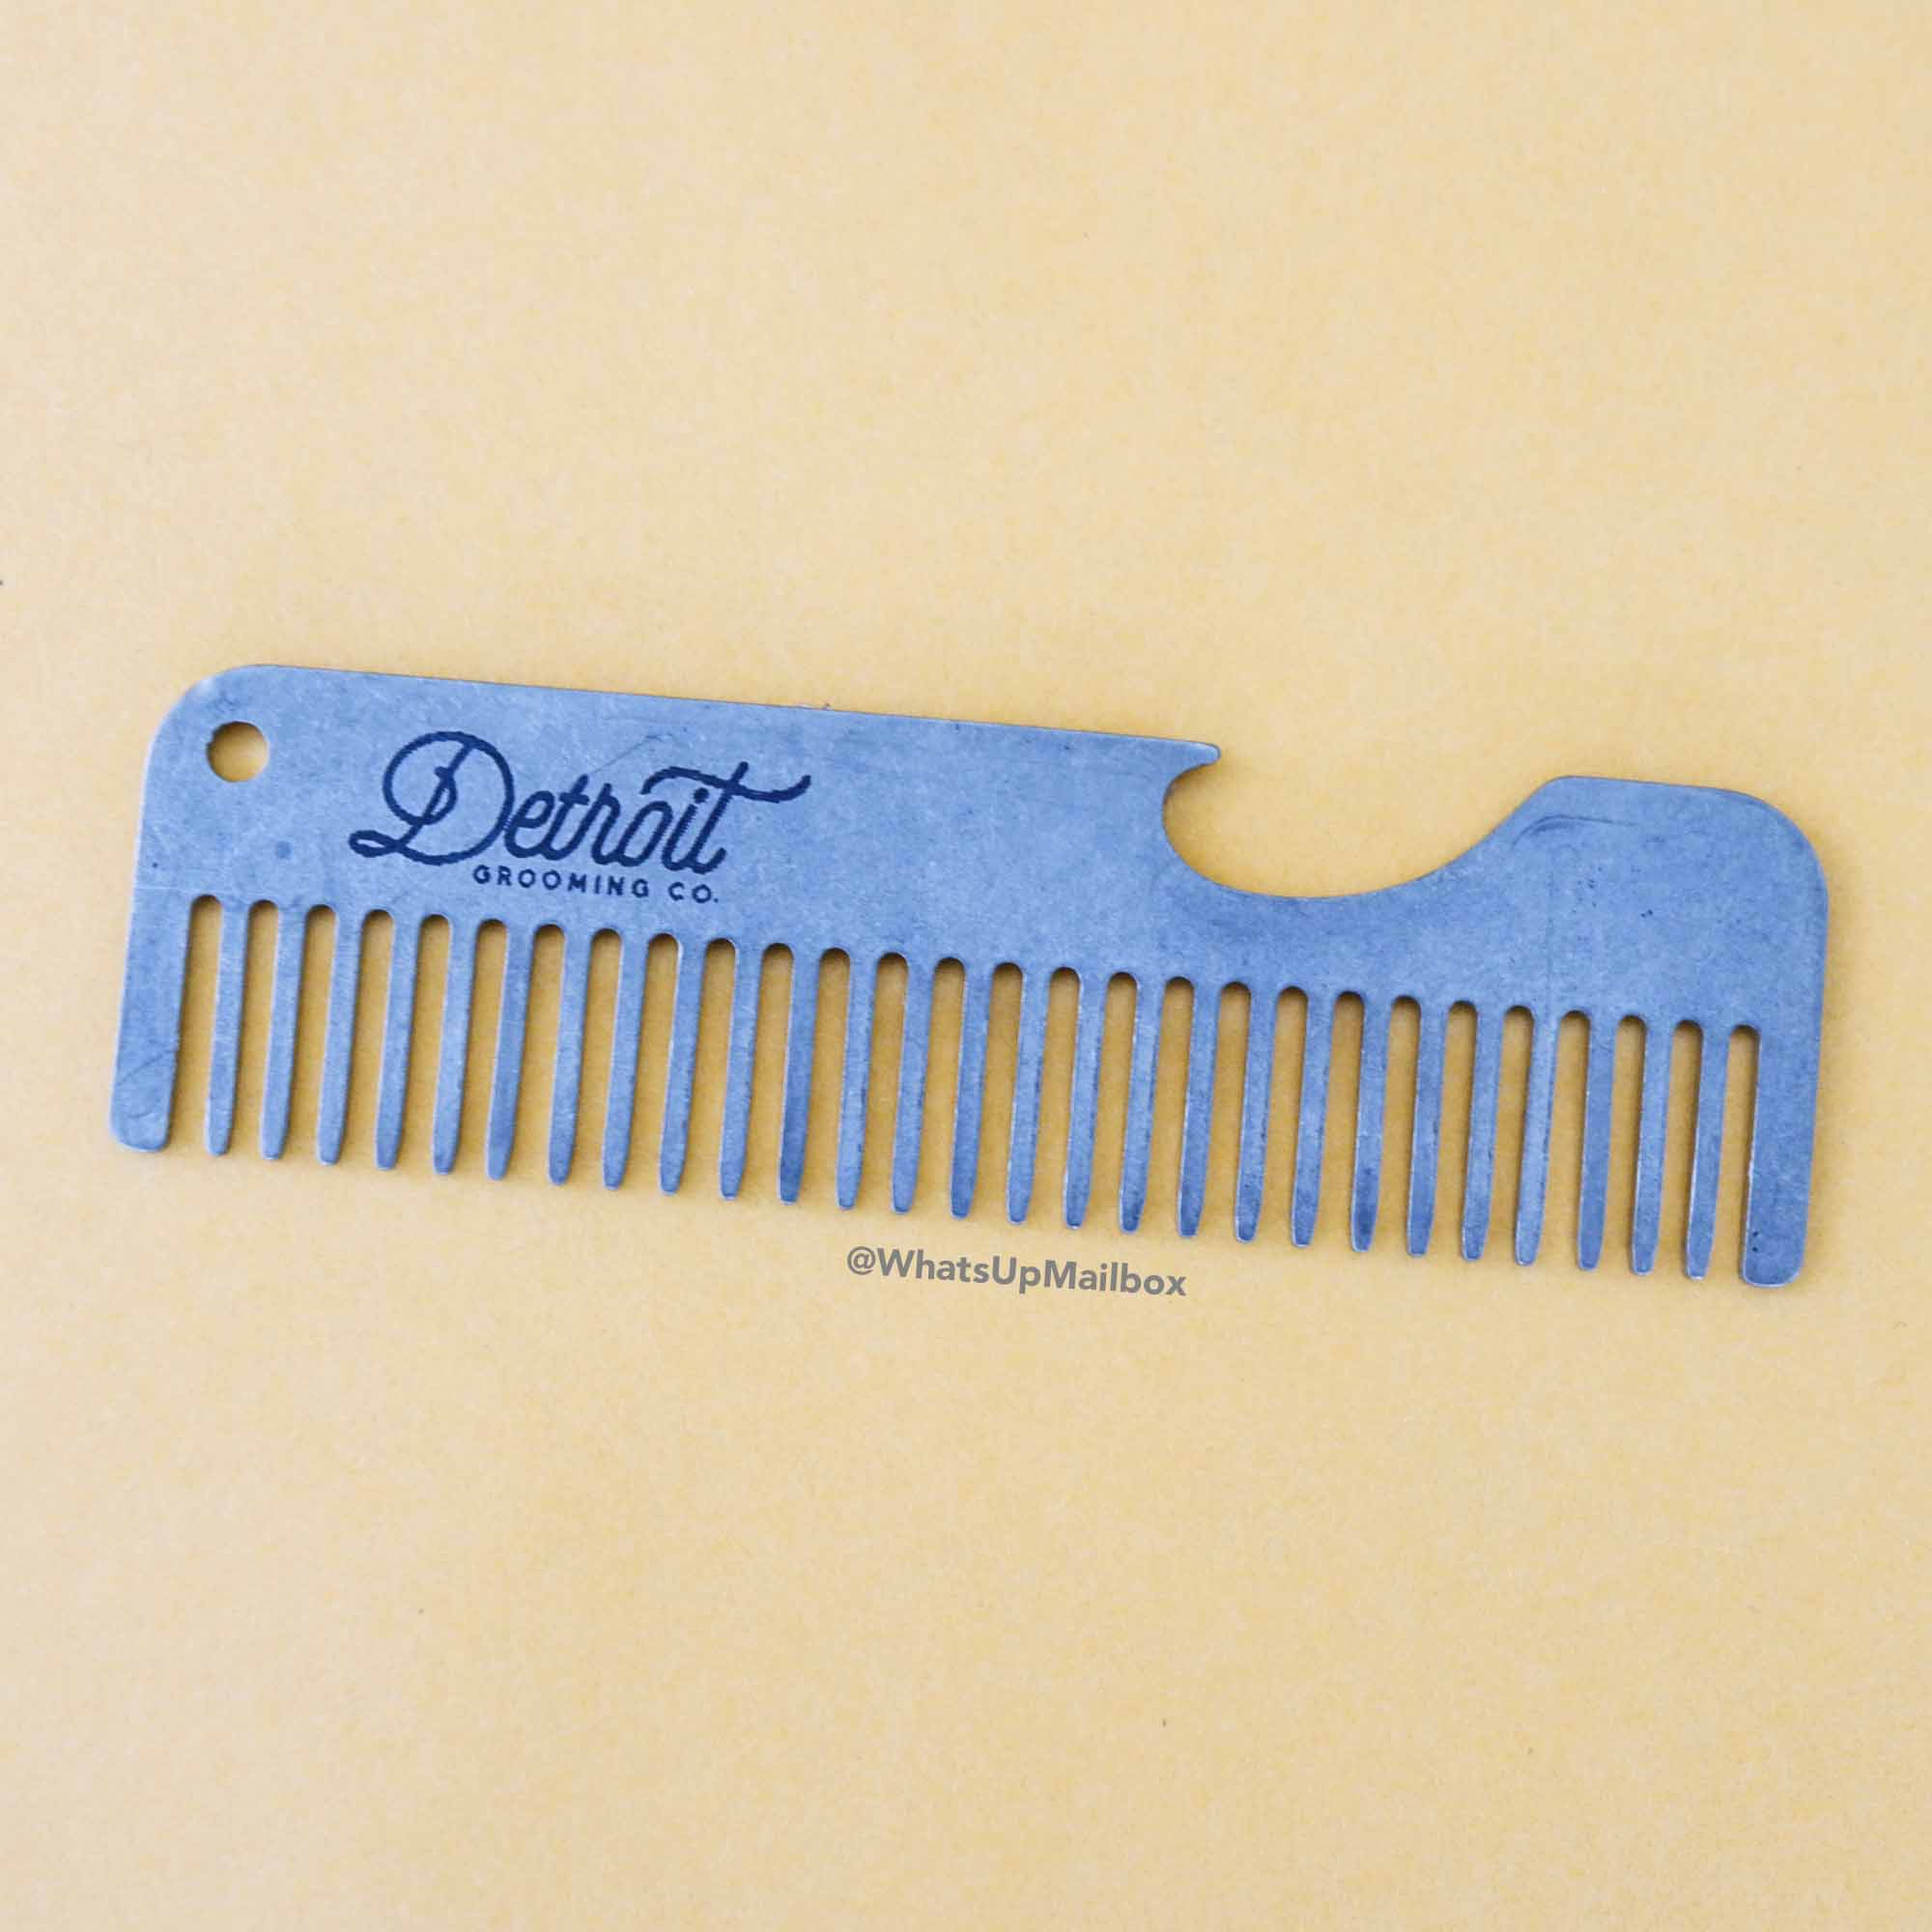 Detroit Grooming Co. - Comb/Bottle Opener